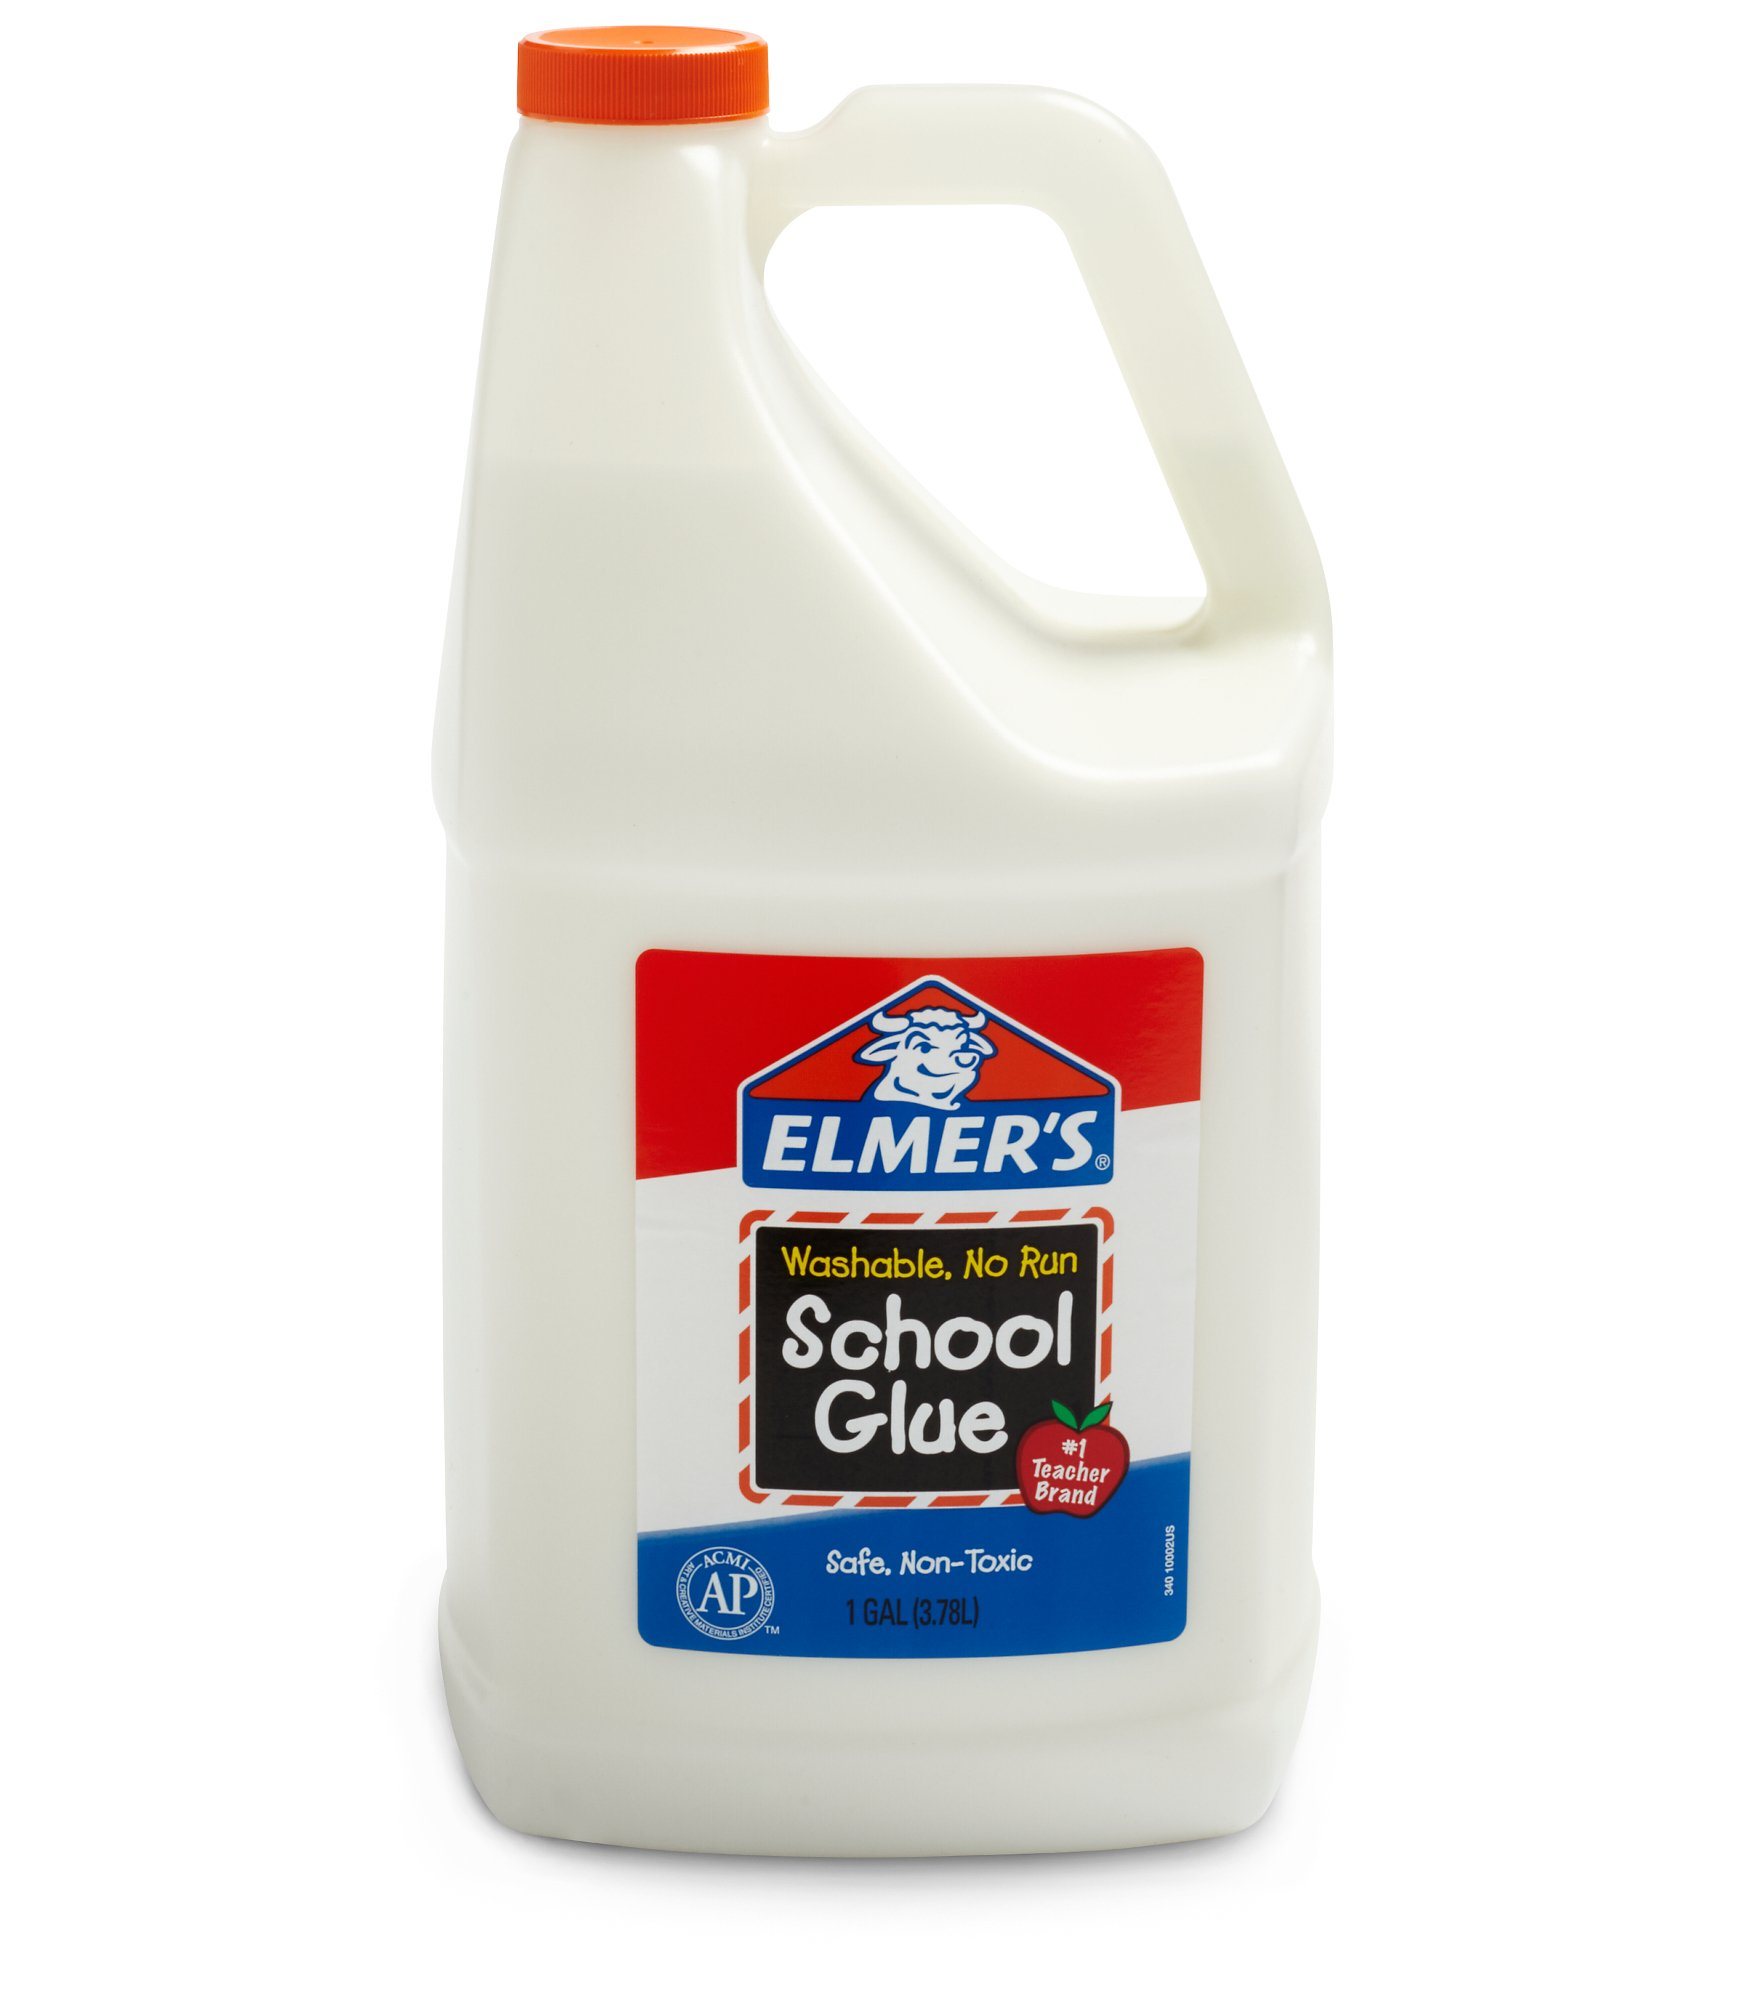 Elmer's Liquid School Glue, Washable, 1 Gallon, 1 Count - Great For Making Slime